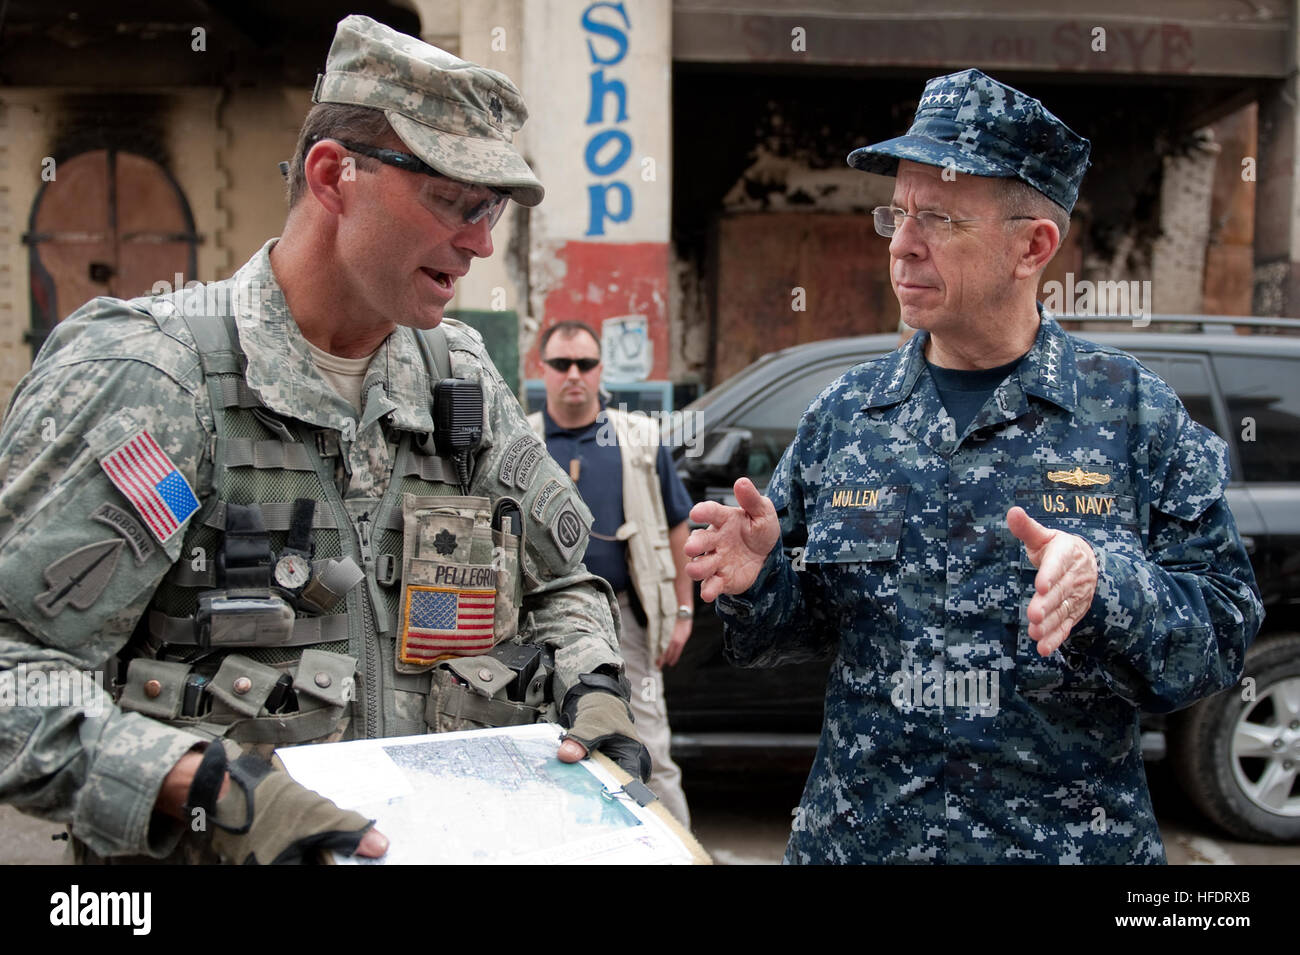 U.S Army Lt. Col. Keith Pellegro, 2nd BT, 82nd Airborne Divison explains the situation during a tour with Chairman - Stock Image